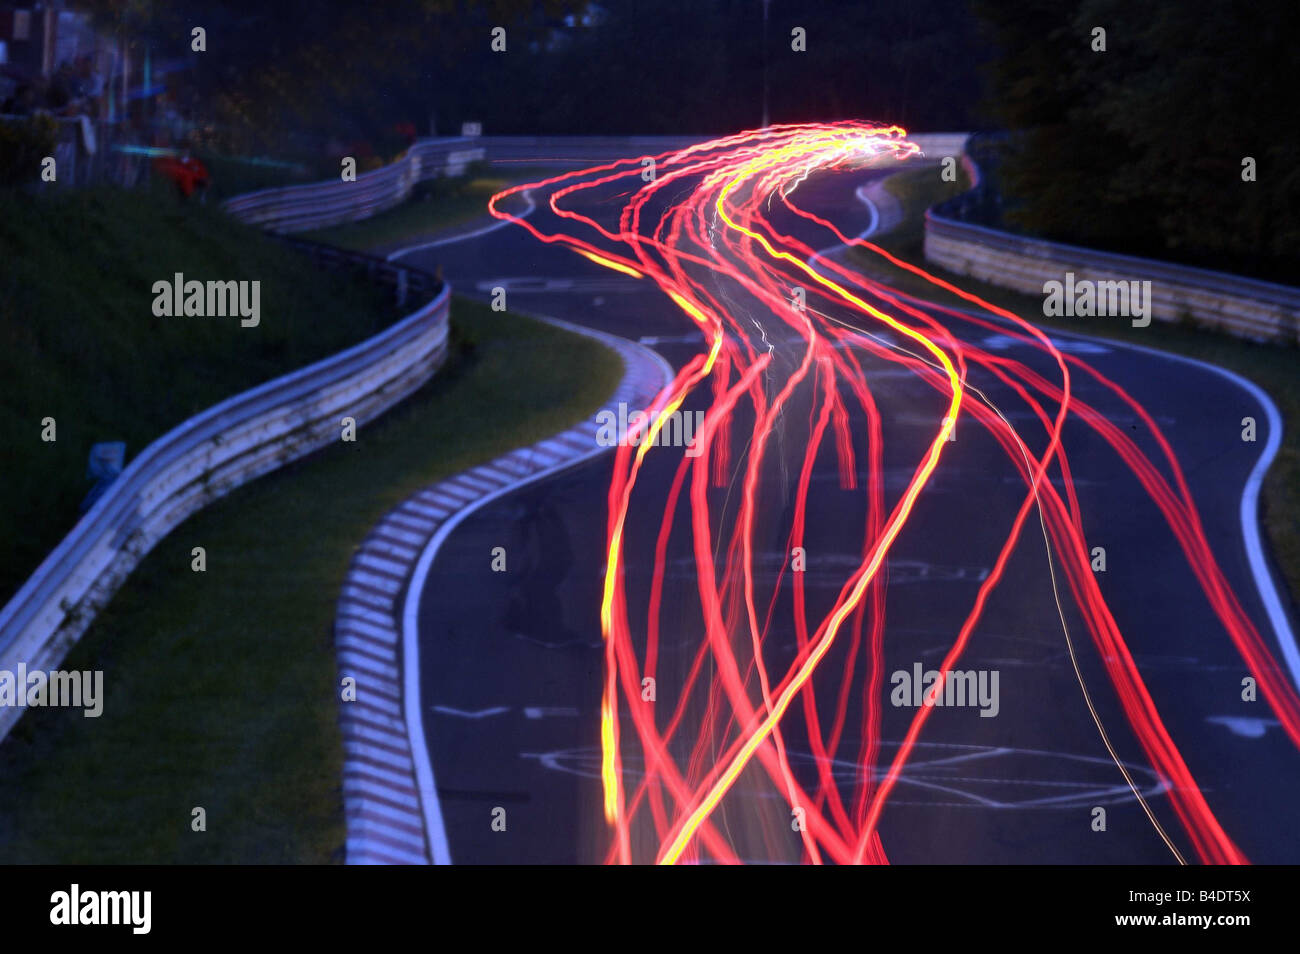 car 24h race 24 standen rennen impression at night n rburgring stock photo royalty free. Black Bedroom Furniture Sets. Home Design Ideas